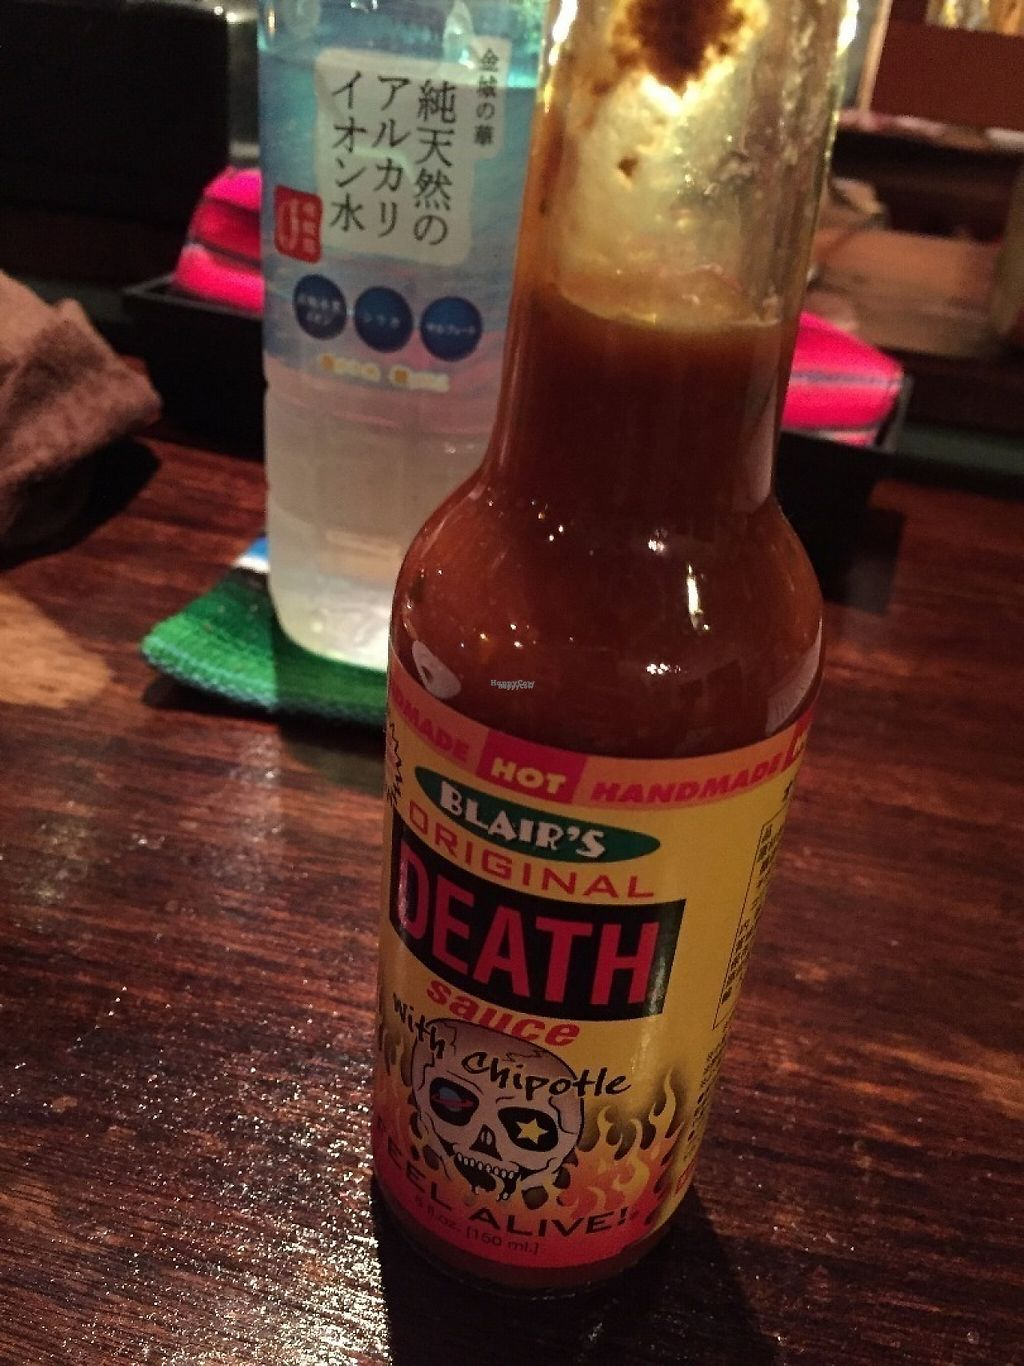 """Photo of Vagabundo Mexican Bar  by <a href=""""/members/profile/SamanthaIngridHo"""">SamanthaIngridHo</a> <br/>Chipotle sauce <br/> April 8, 2017  - <a href='/contact/abuse/image/52404/245658'>Report</a>"""